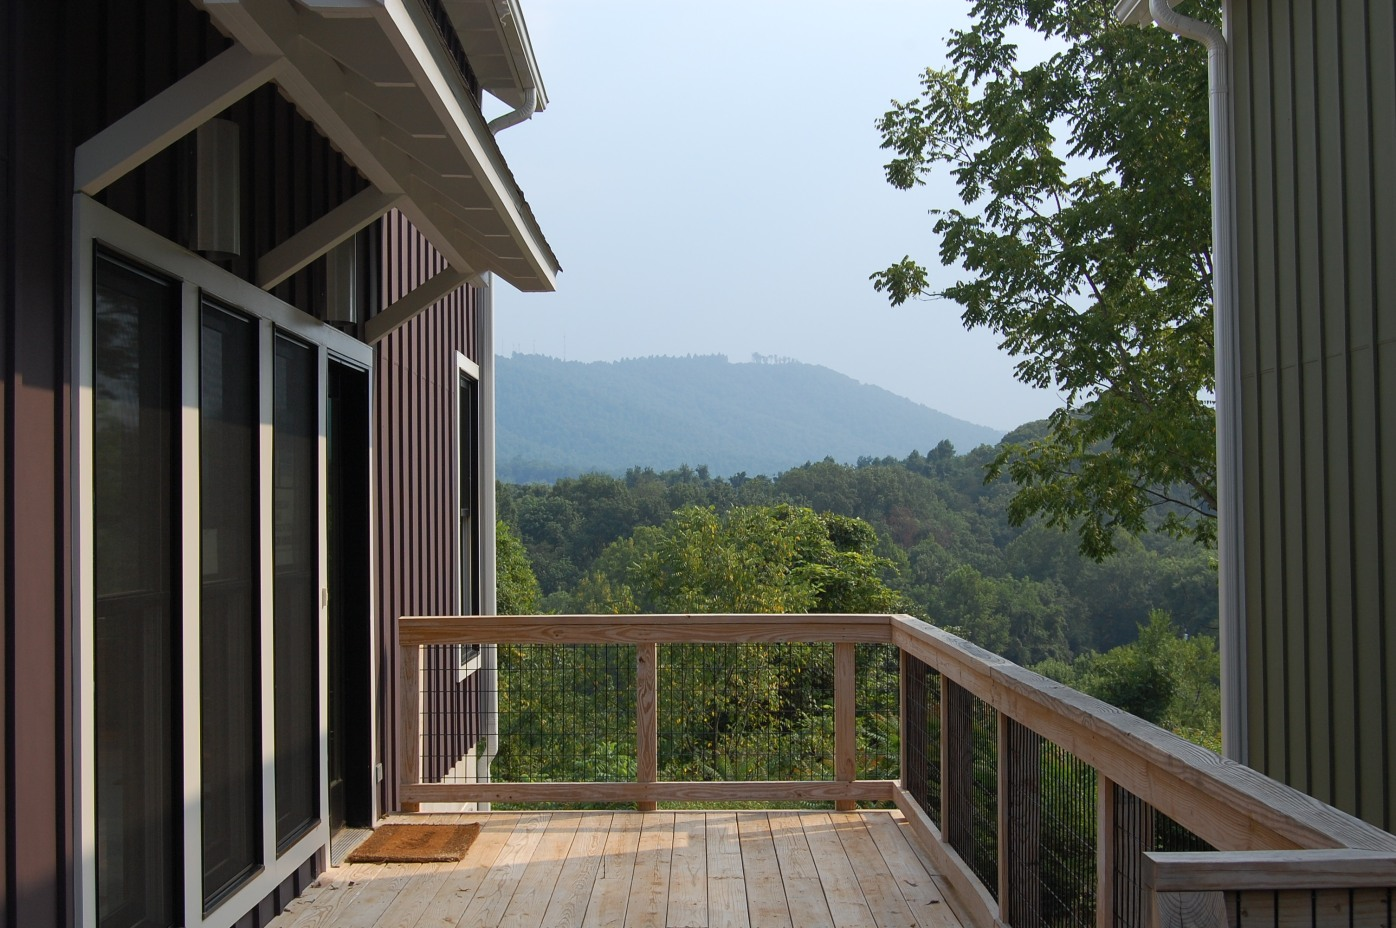 entry deck to one of the homes -The Neighborhood's Edge project